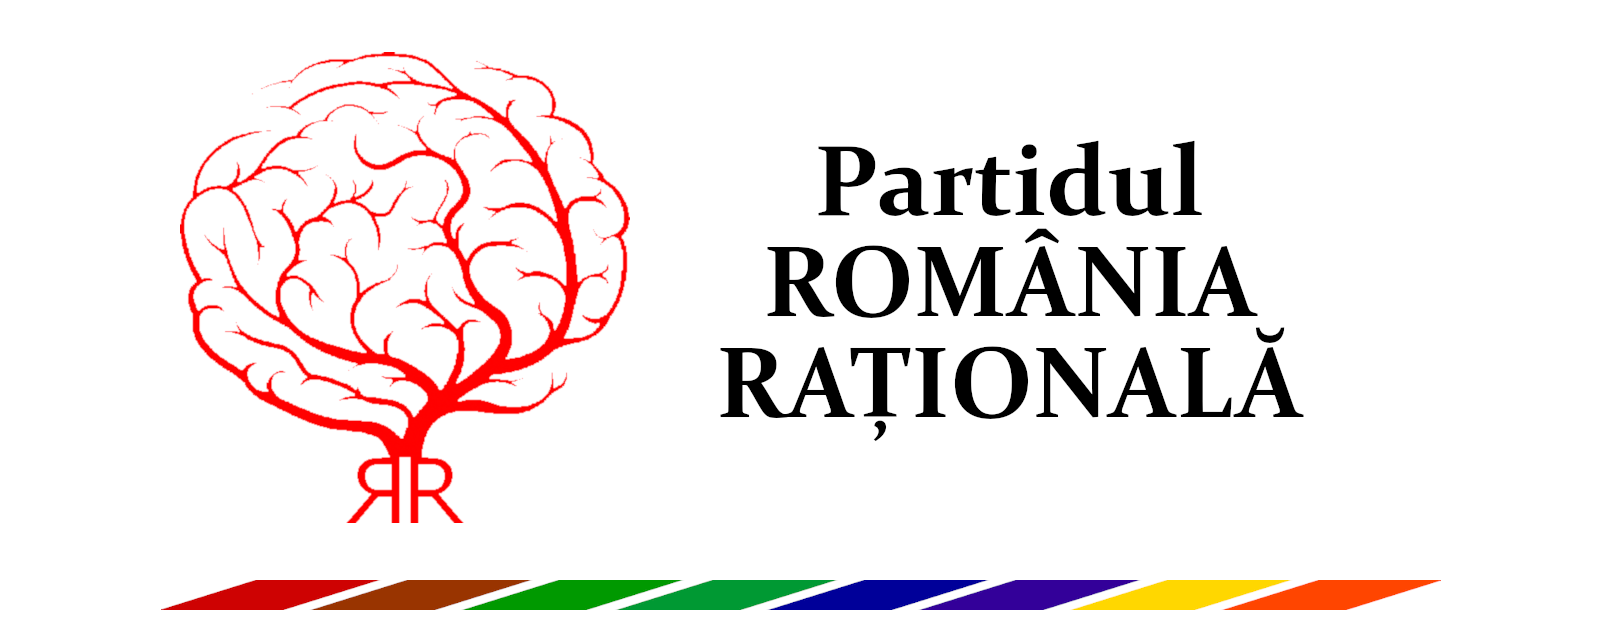 https://ziarul.romania-rationala.ro/control/articole/articole/partidul-romania-rationala-cover-1602x630_5.png